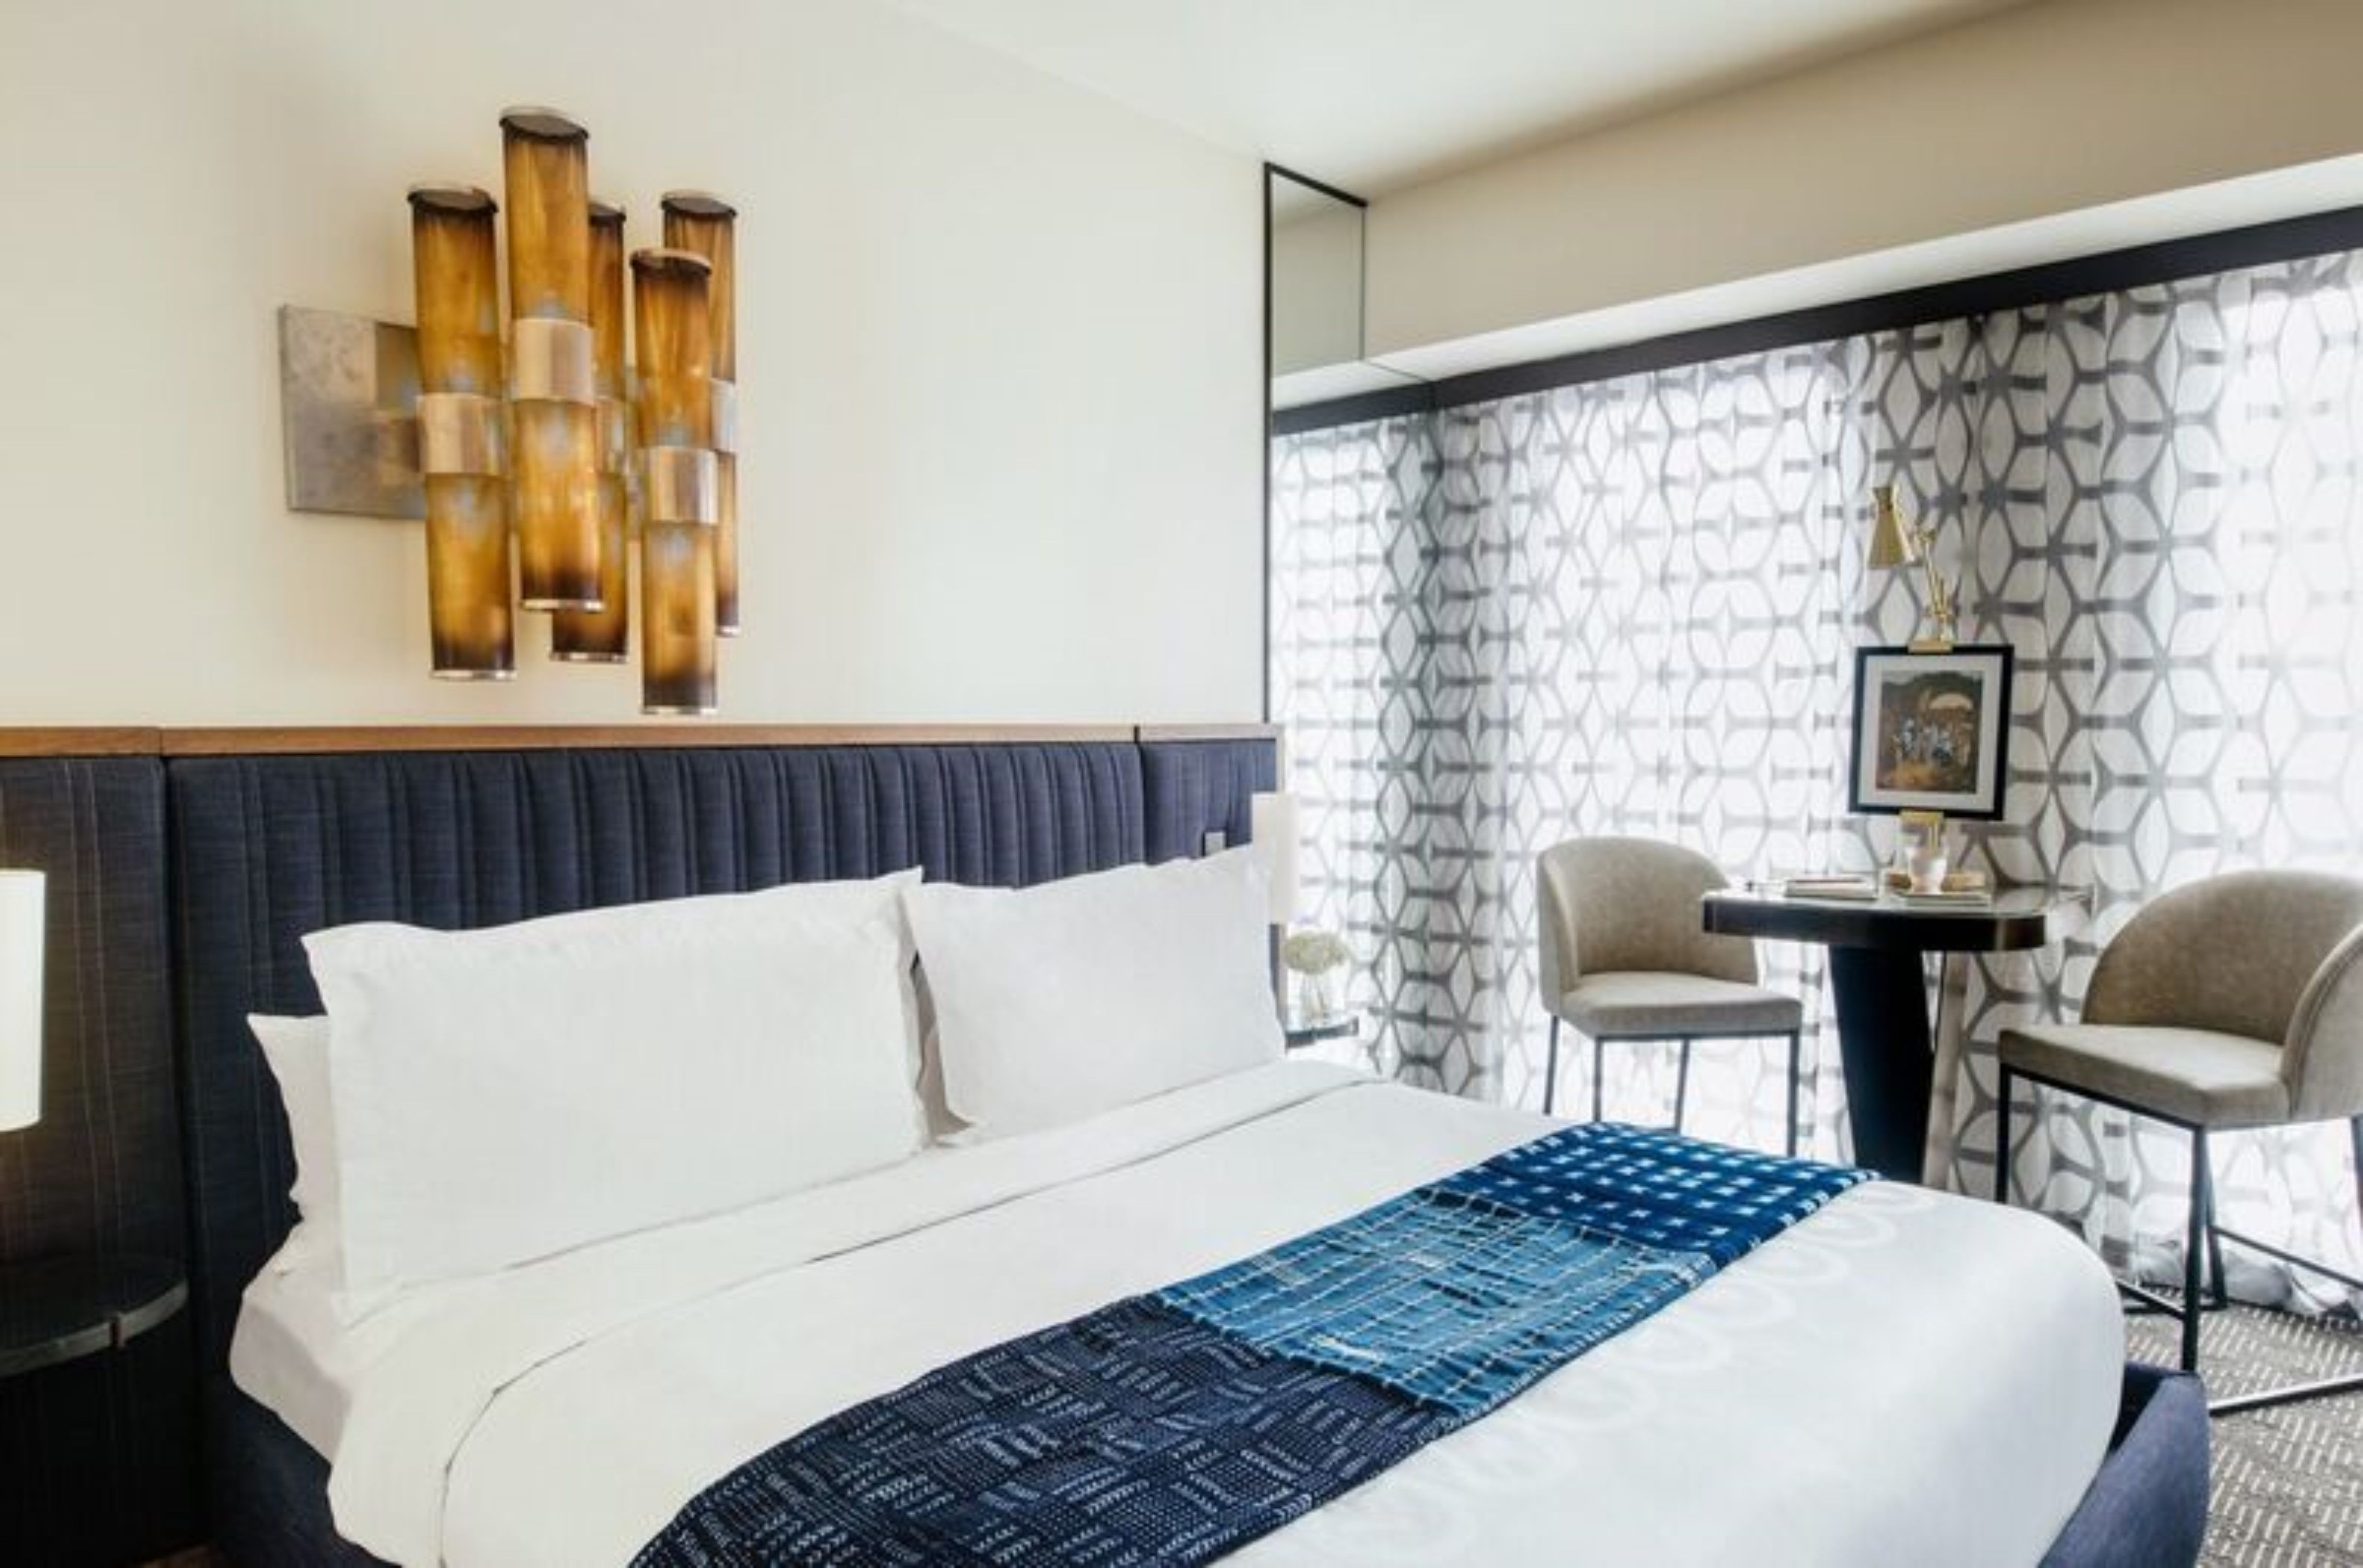 Jdv Interieur Enjoy The Upscale Chic Rooms At The Troubadour Hotel In New